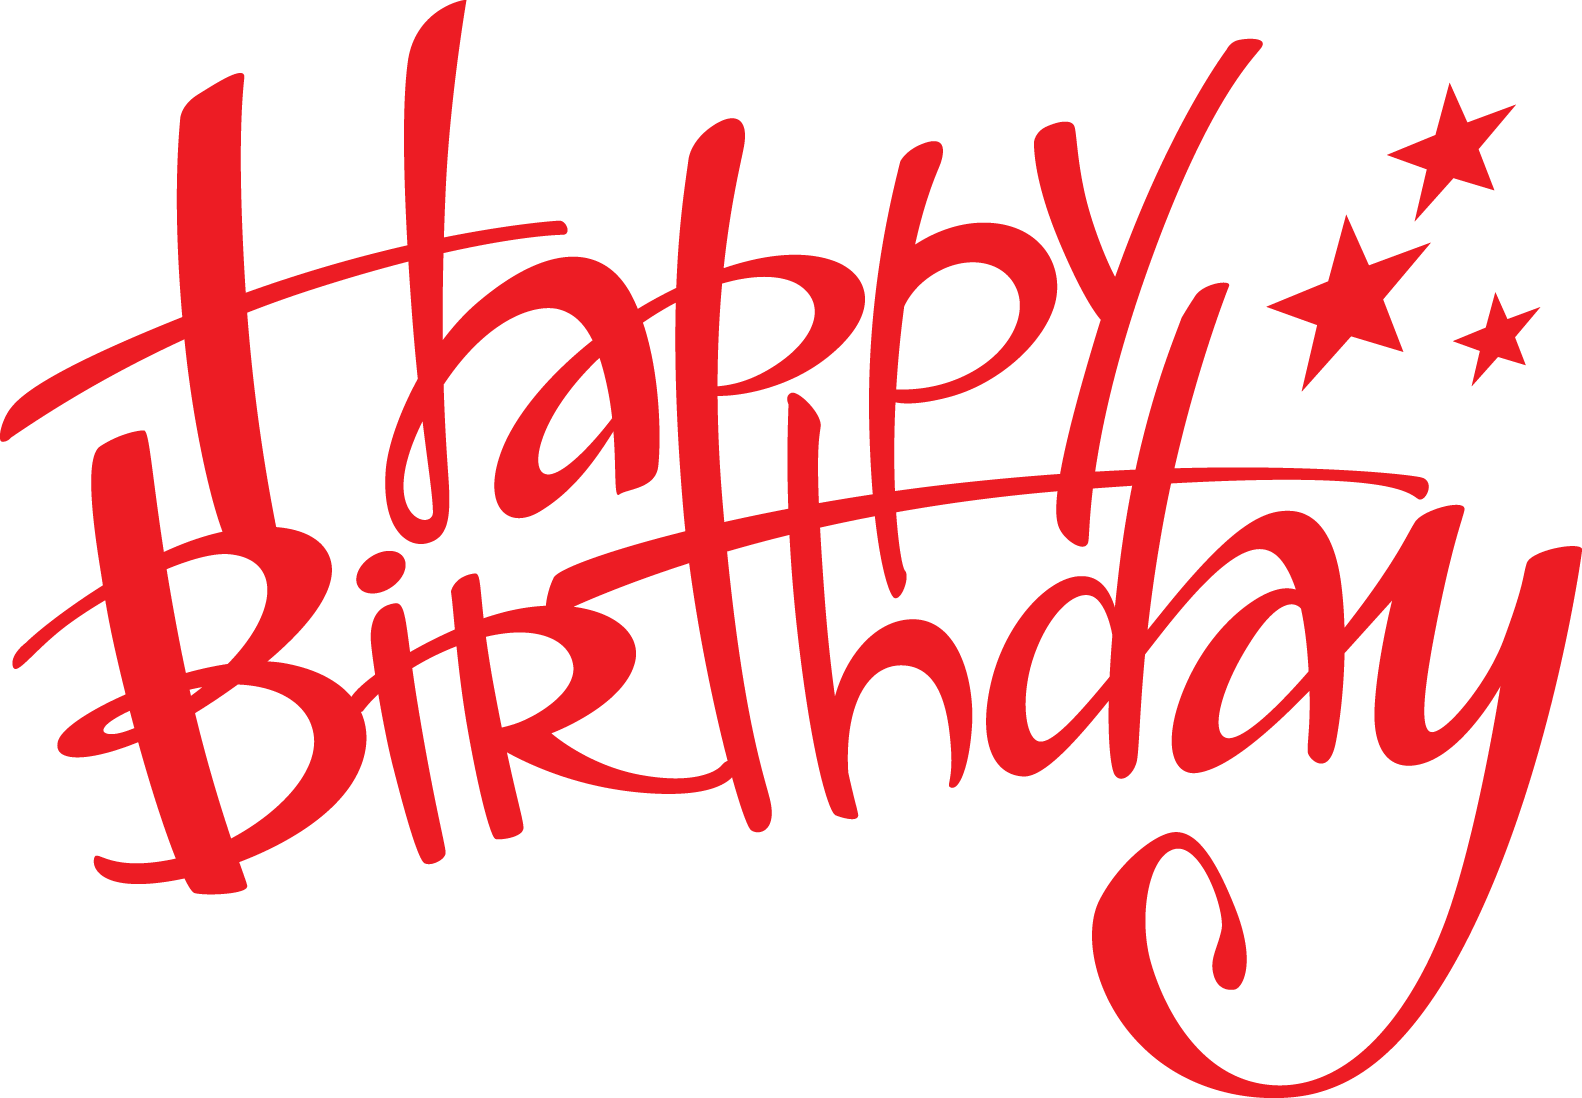 Uncovered wordpng kib viewed. Name clipart happy birthday